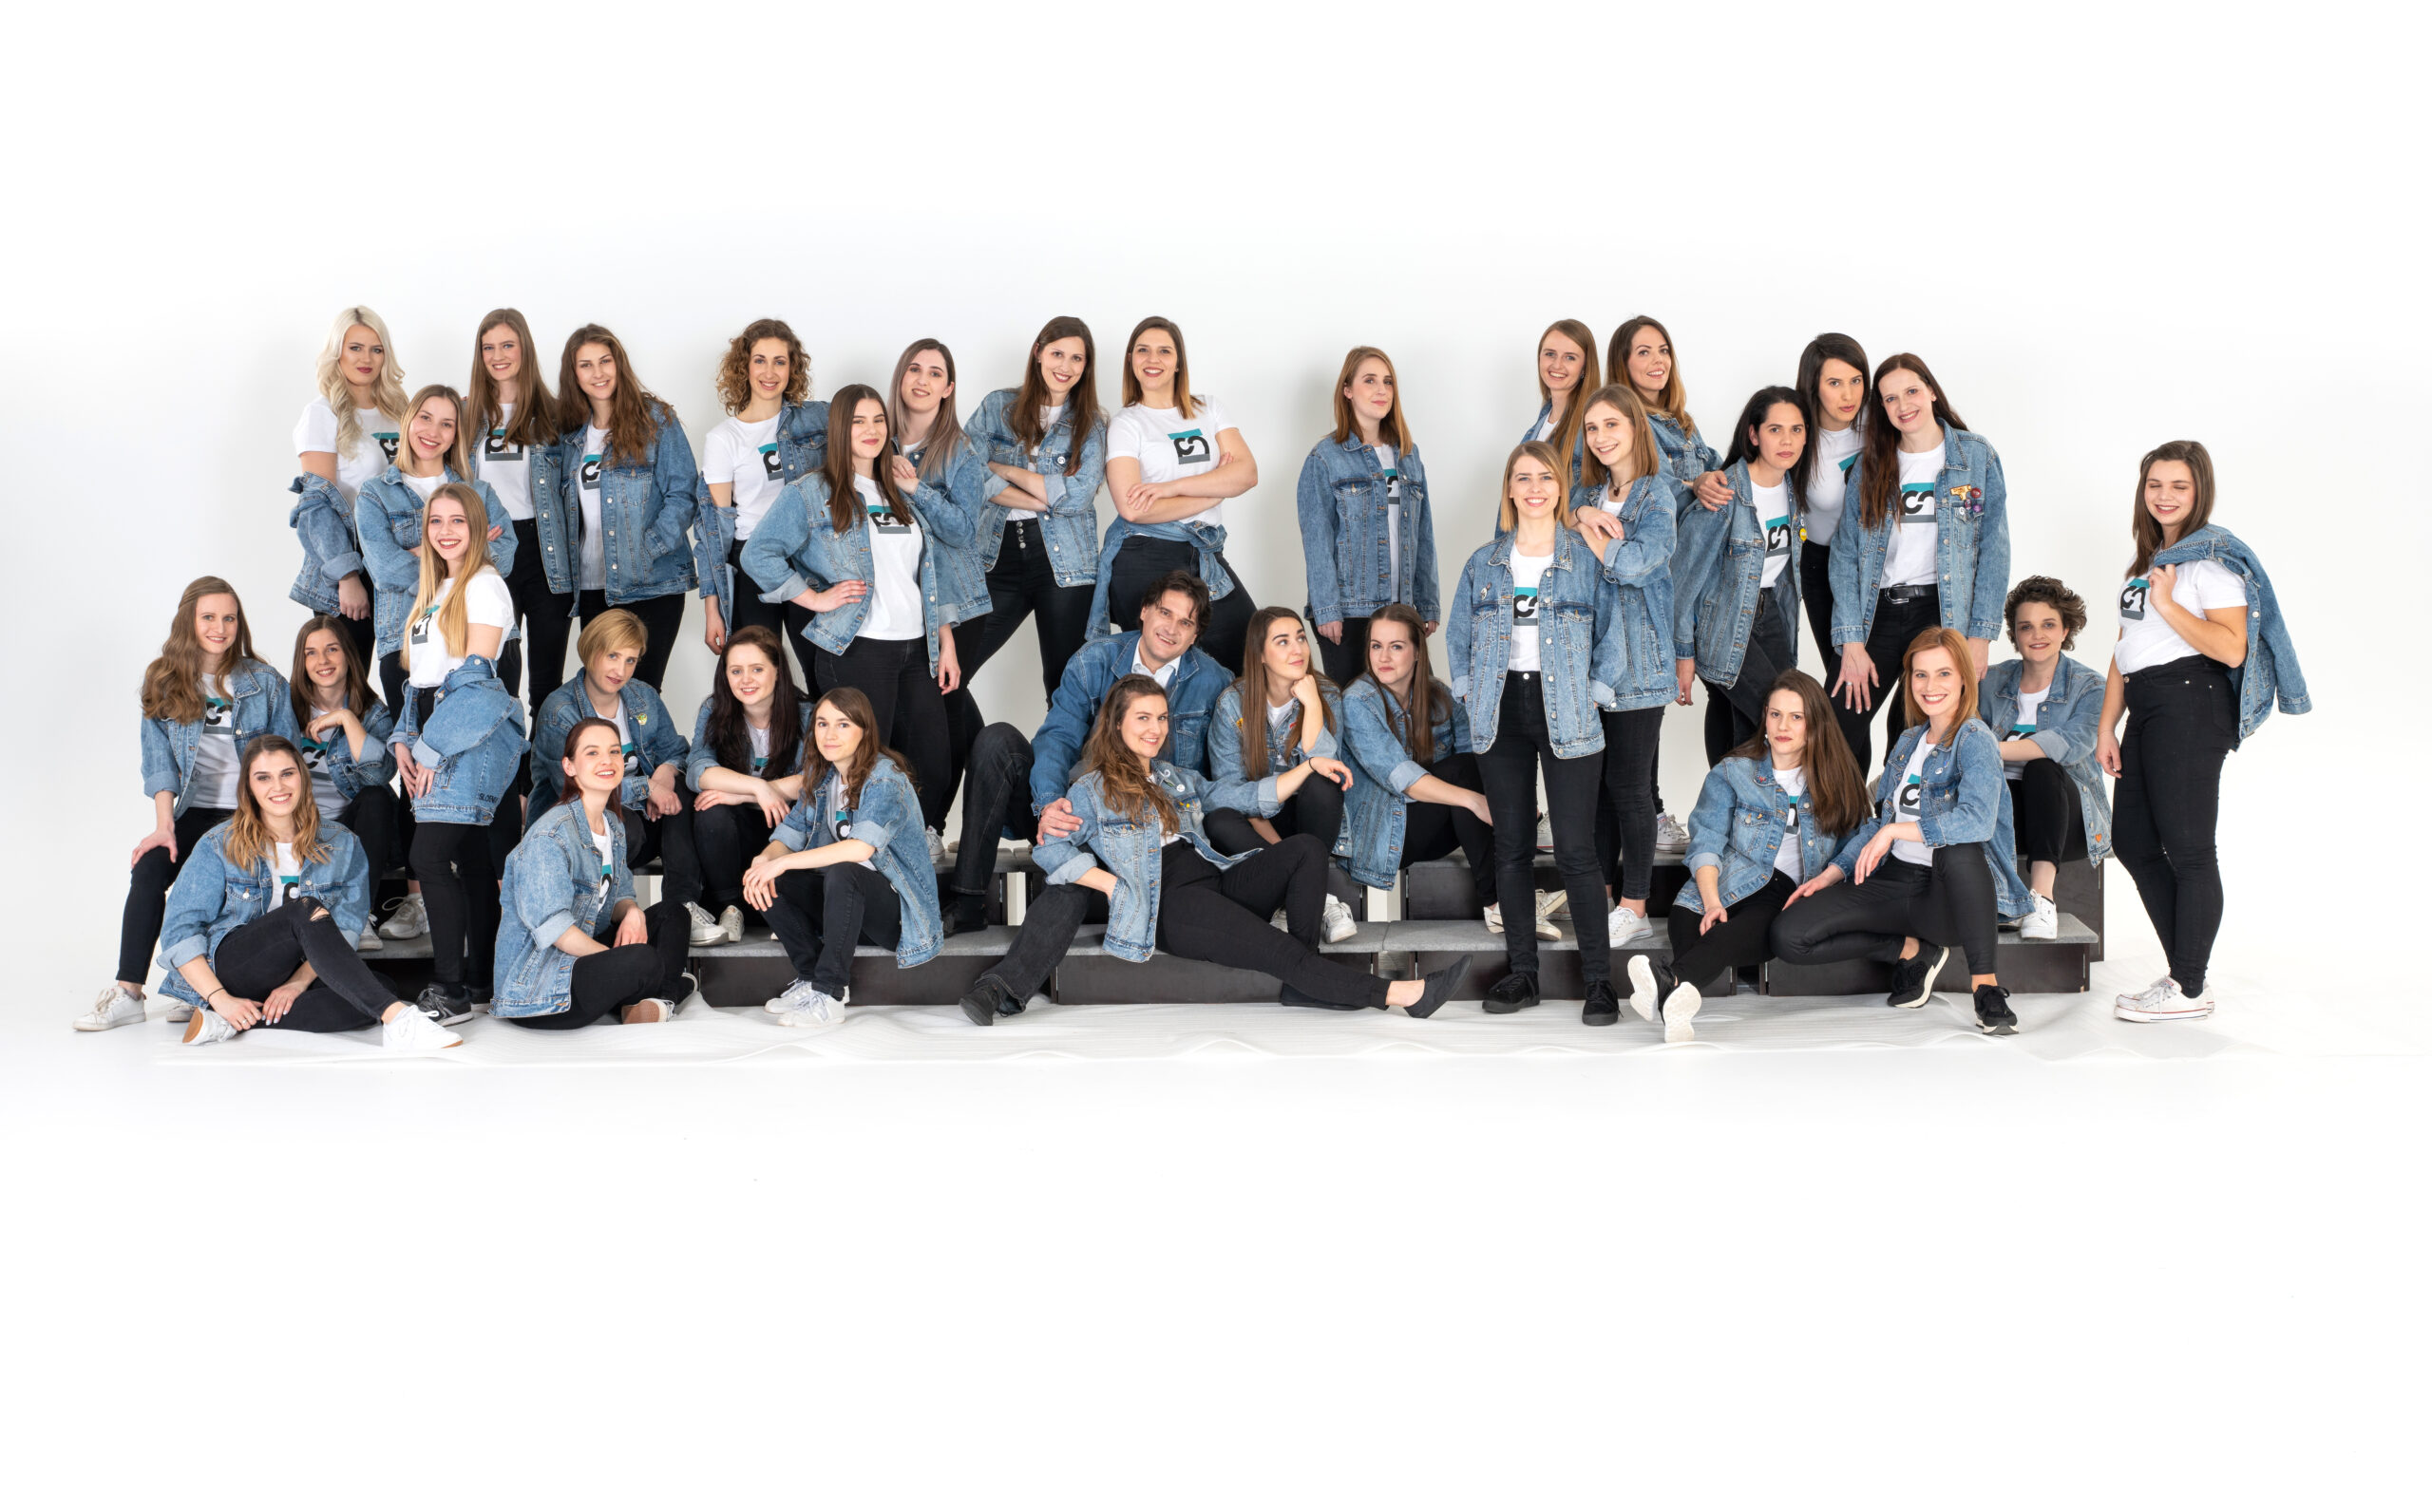 Matic Lipar, Slovenia: The CM Denim Jacket, 2020, Carmen manet, Slovenia - The CM denim jacket quickly became a statement piece and an essential element of the Carmen manet female choir attire. Each jacket is unique: the singers decorated them with patches, illustrations and other accessories that remind them of their joint achievements and adventures.